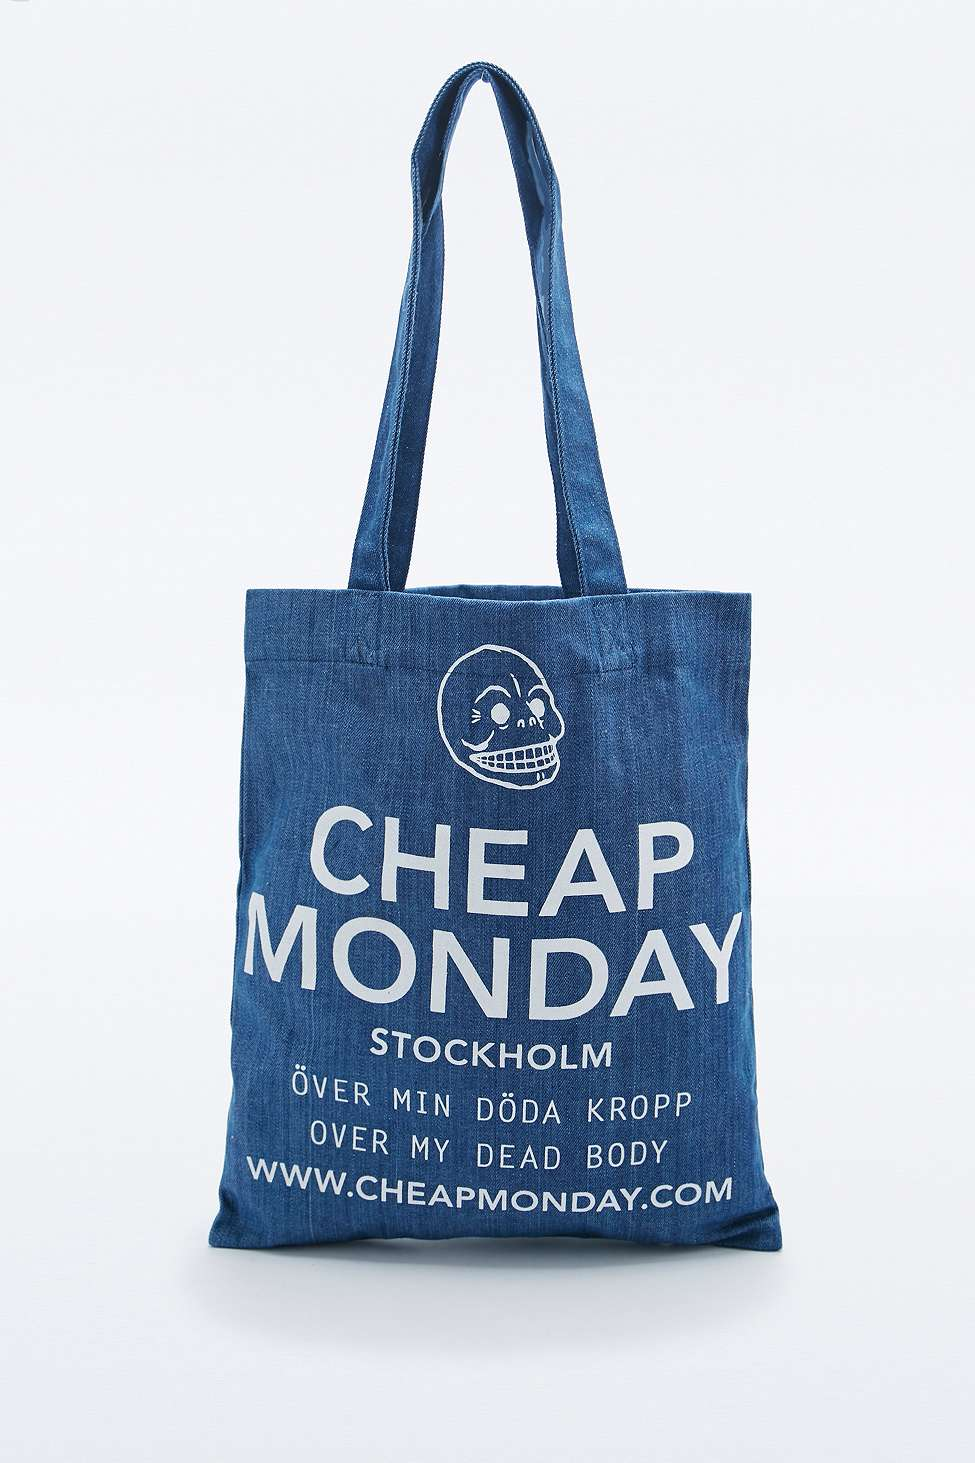 Cheap Monday New Denim Tote Bag in Blue - Magnet Look